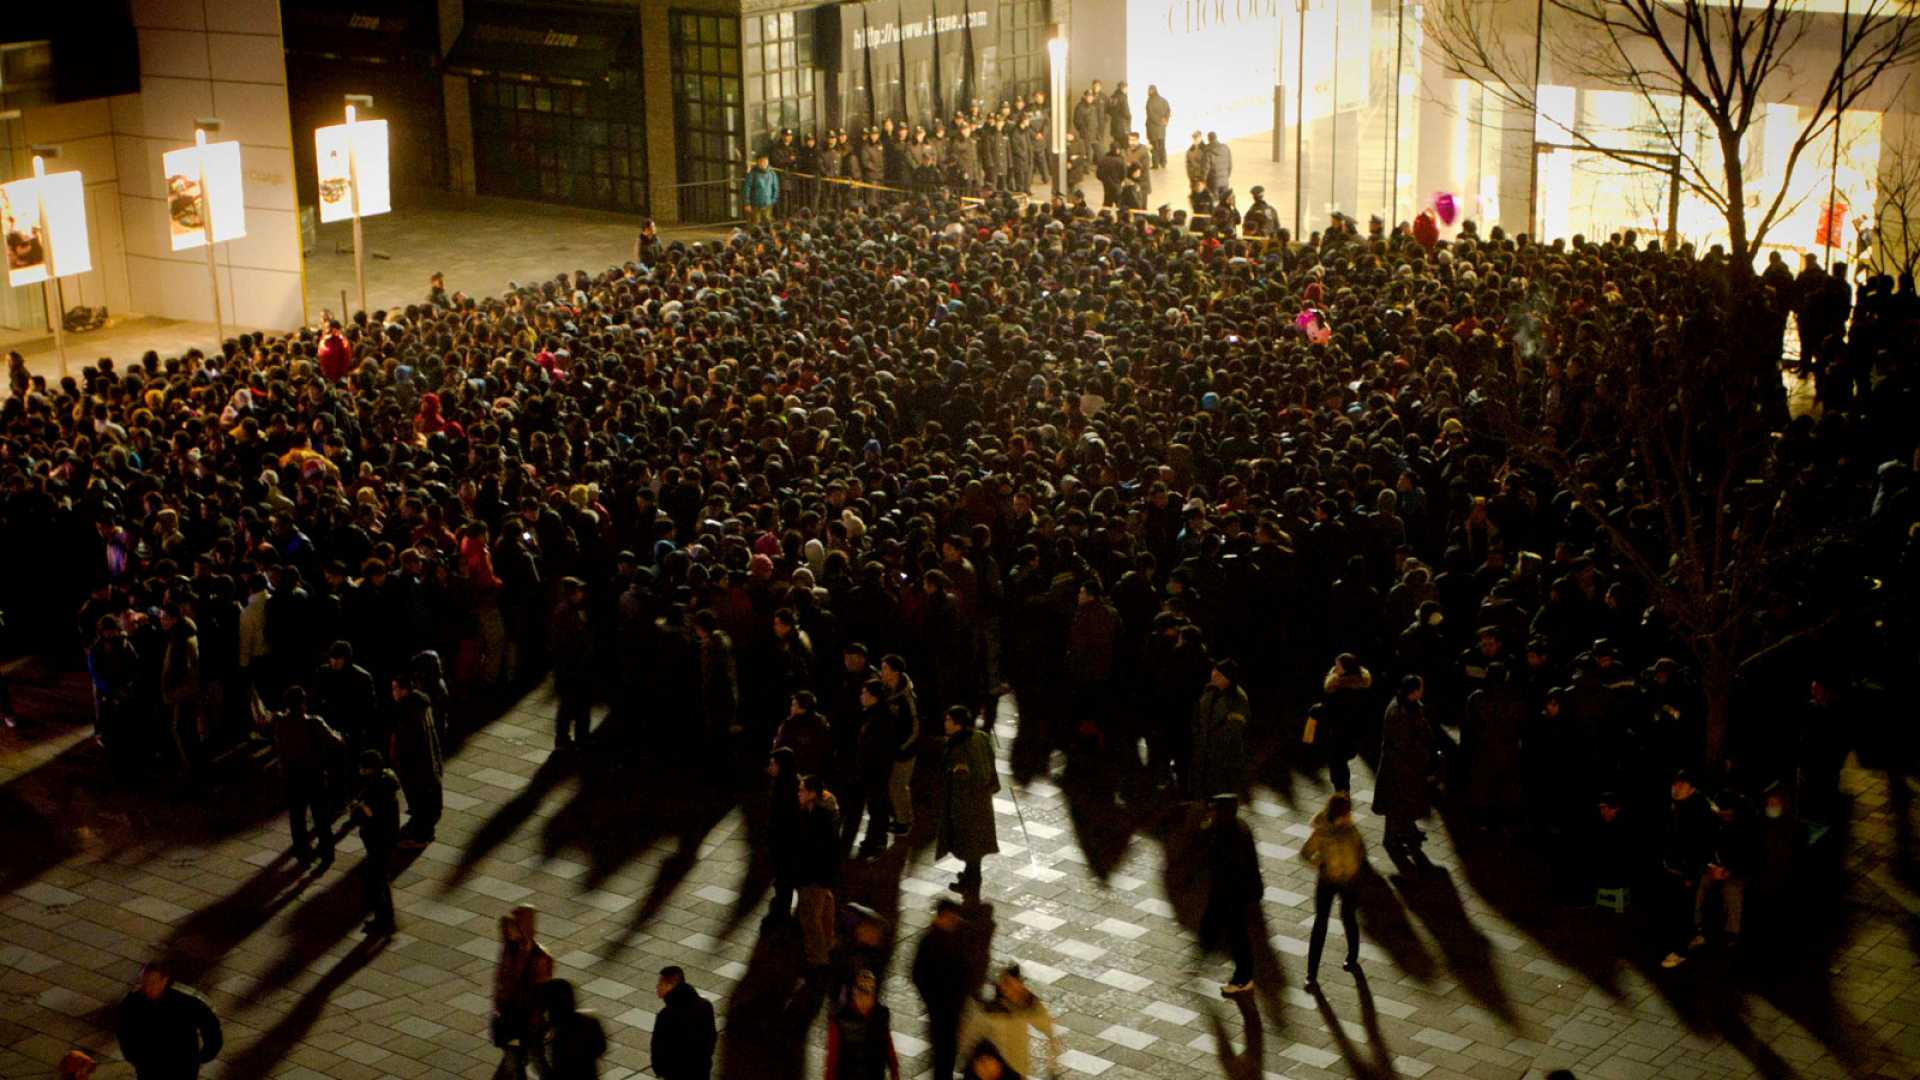 Thousands of Chinese customers queue up outside an Apple store in Beijing's upmarket Sanlitun shopping district, in Beijing early morning on January 13, 2012.